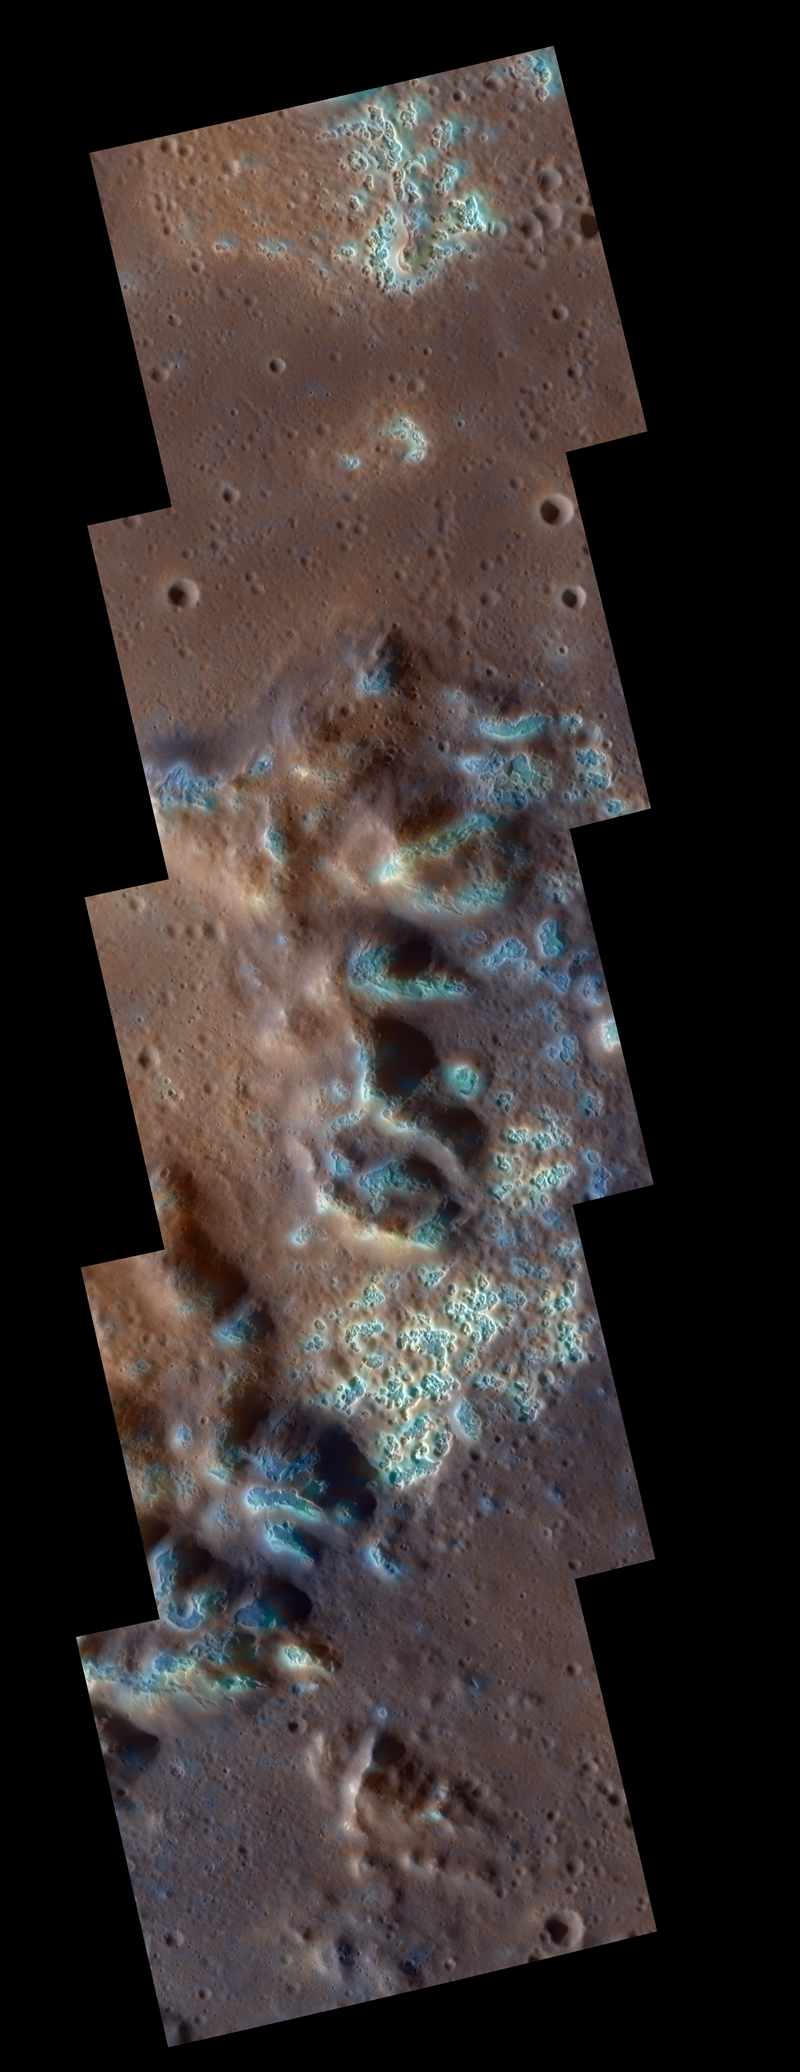 NASA's MESSENGER spacecraft discovered strange hollows on the surface of Mercury.